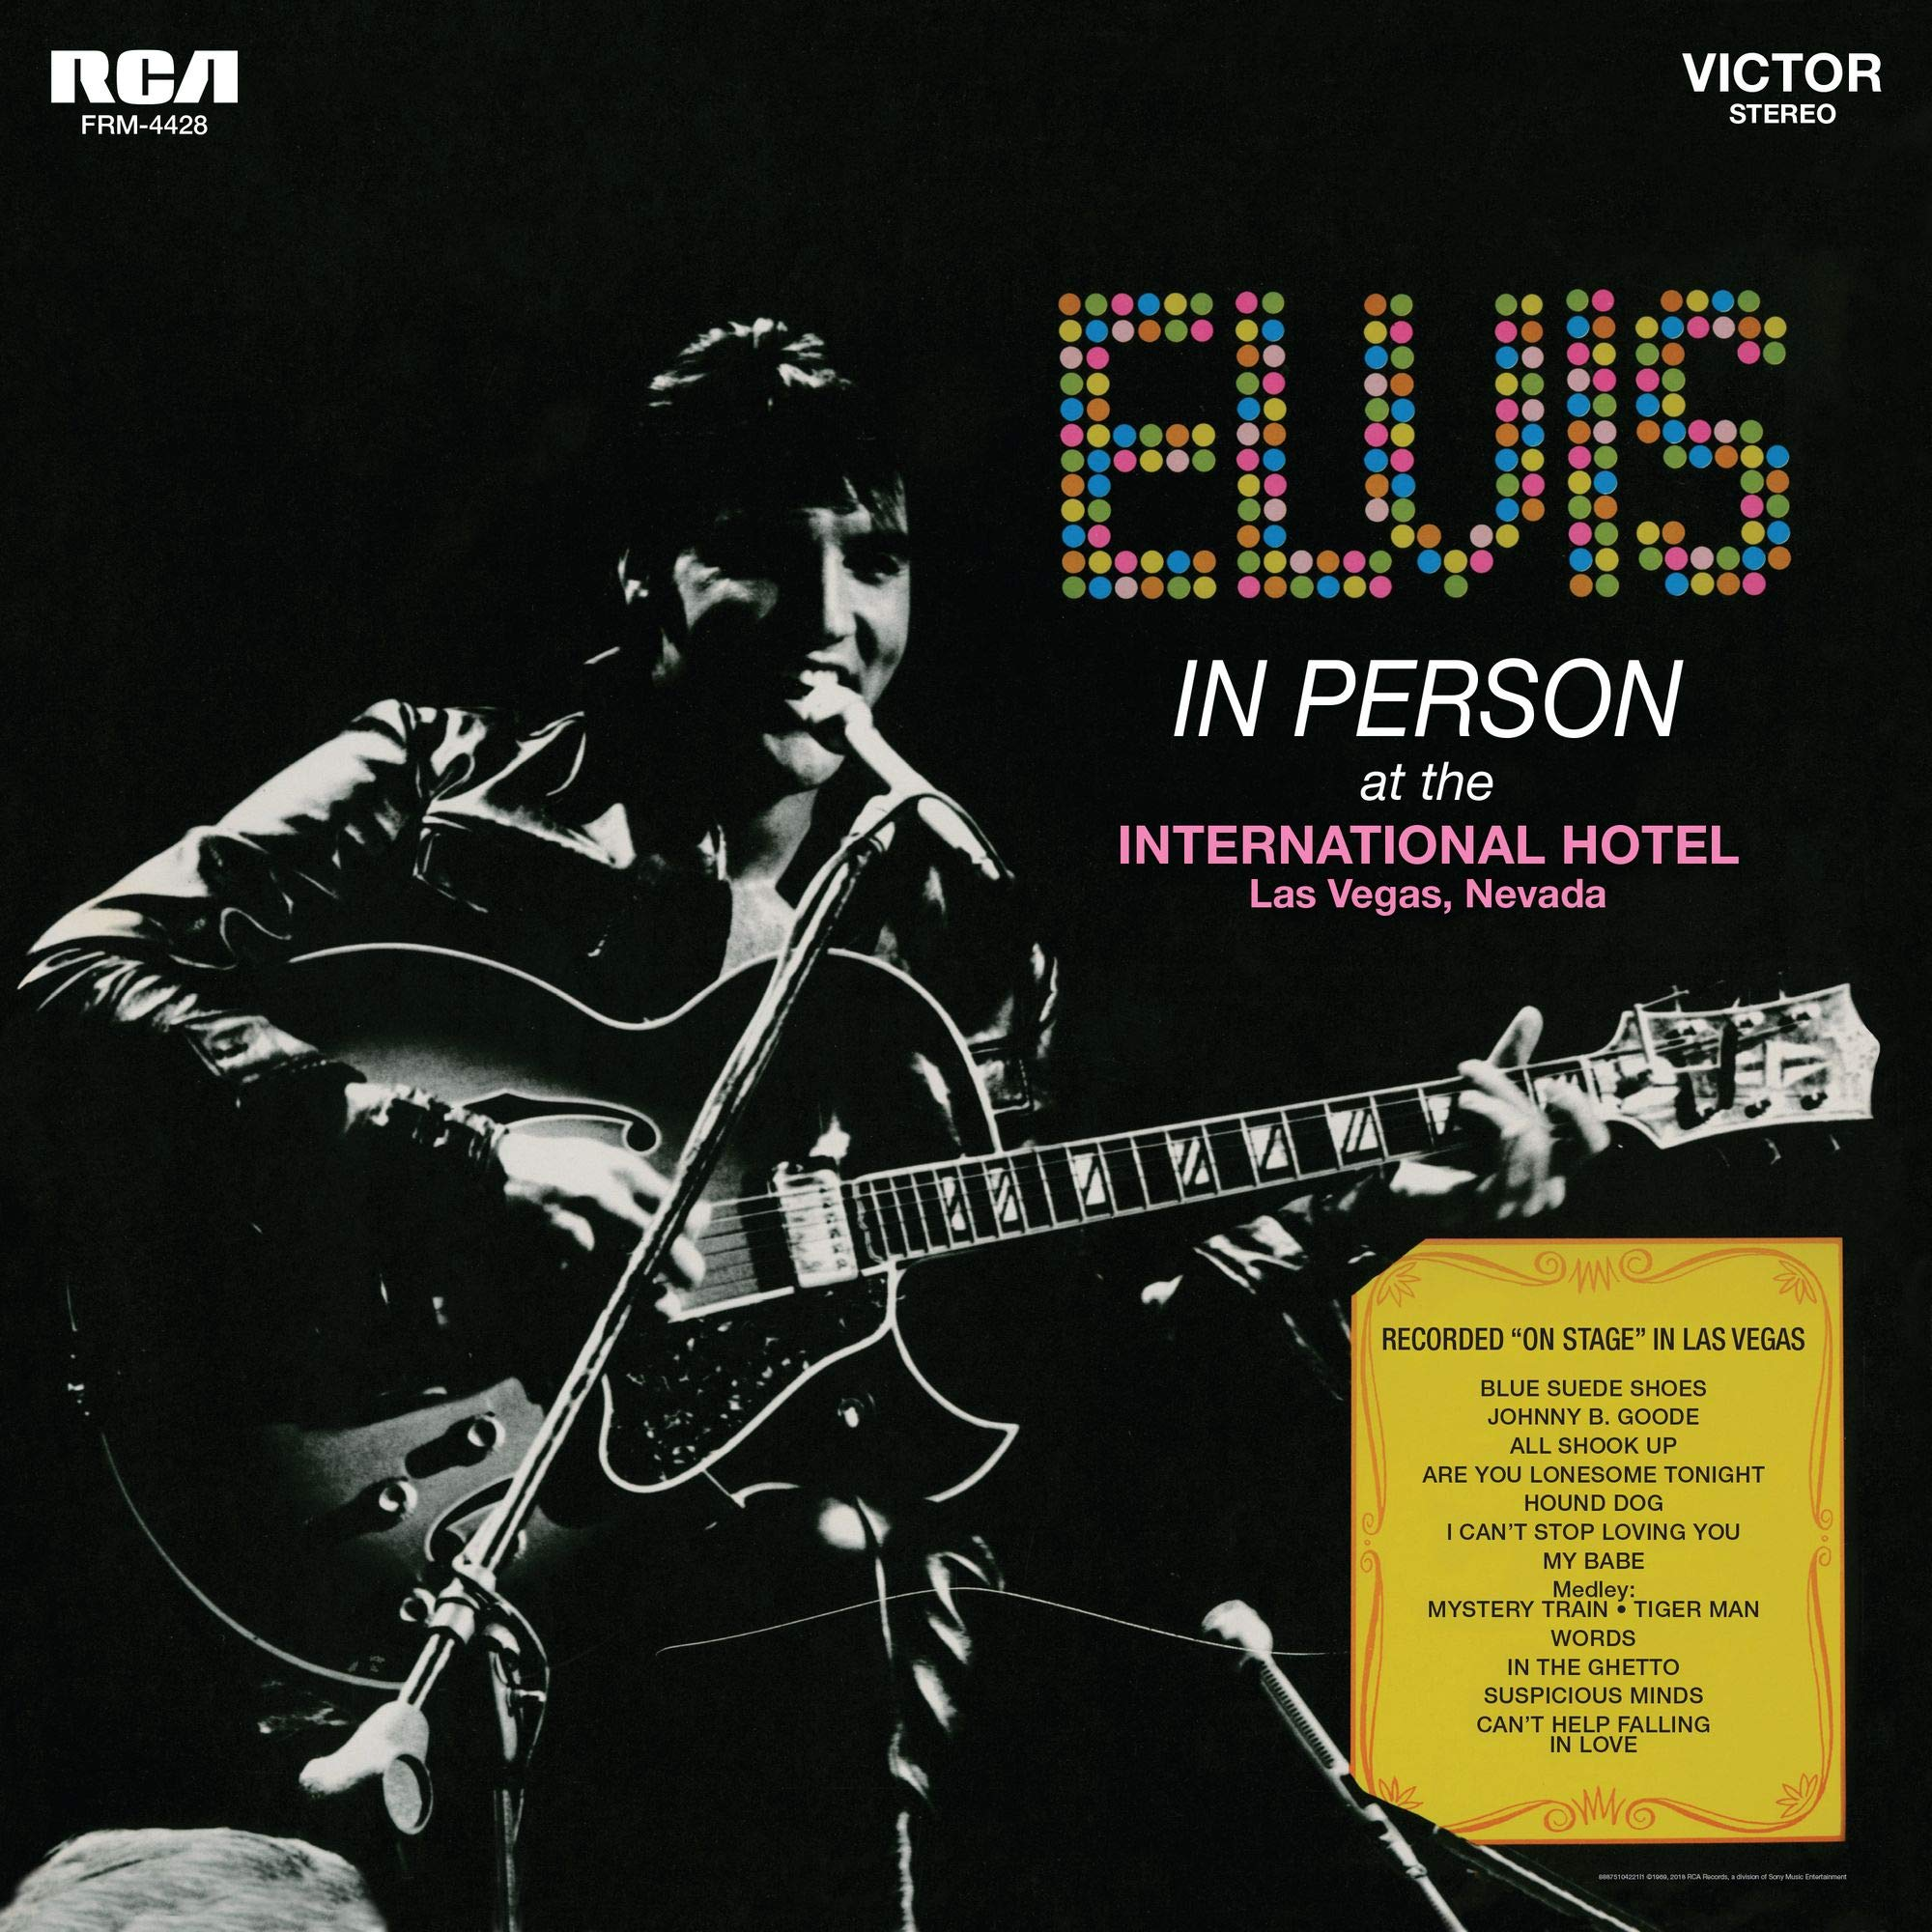 Vinilo : Elvis Presley - In Person At The International Hotel Las Vegas Nevada (180 Gram Vinyl, Limited Edition, Gatefold LP Jacket, Audiophile, Gold)